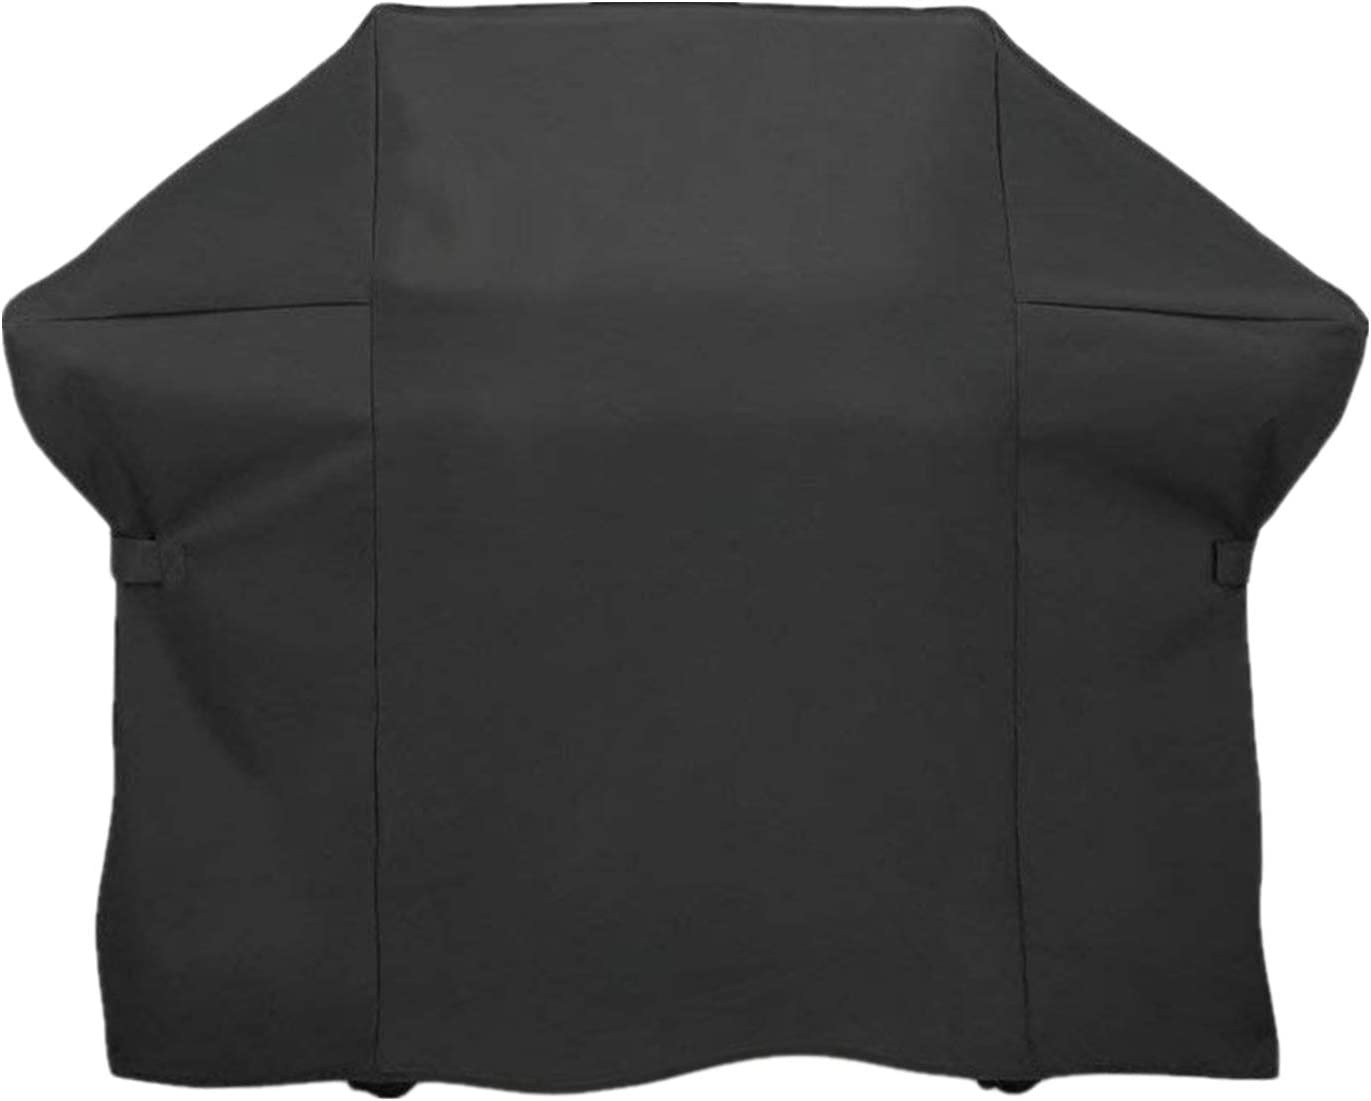 UpStart Components Gas Phoenix Mall Grill Cover Heavy Duty Waterproof Max 90% OFF Replace